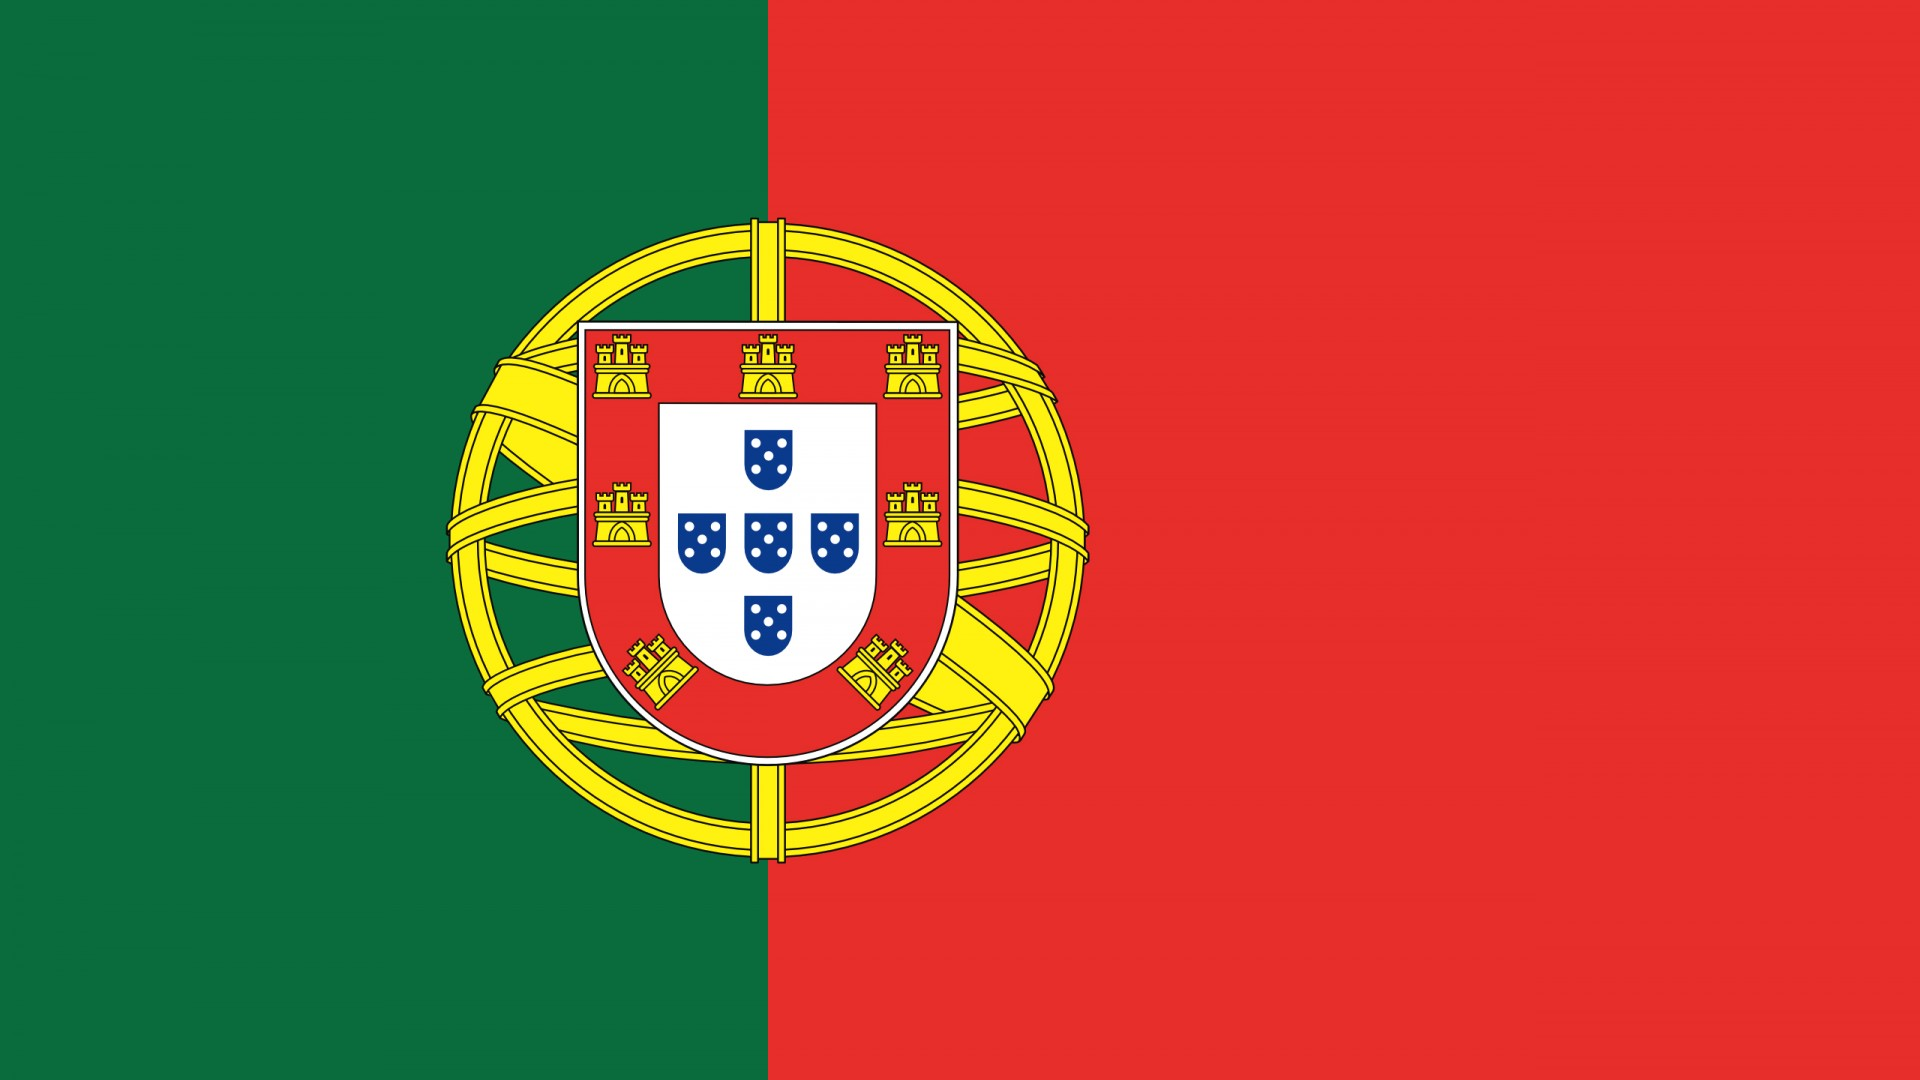 Portugal Flag Wallpaper 83 images in Collection Page 1 1920x1080